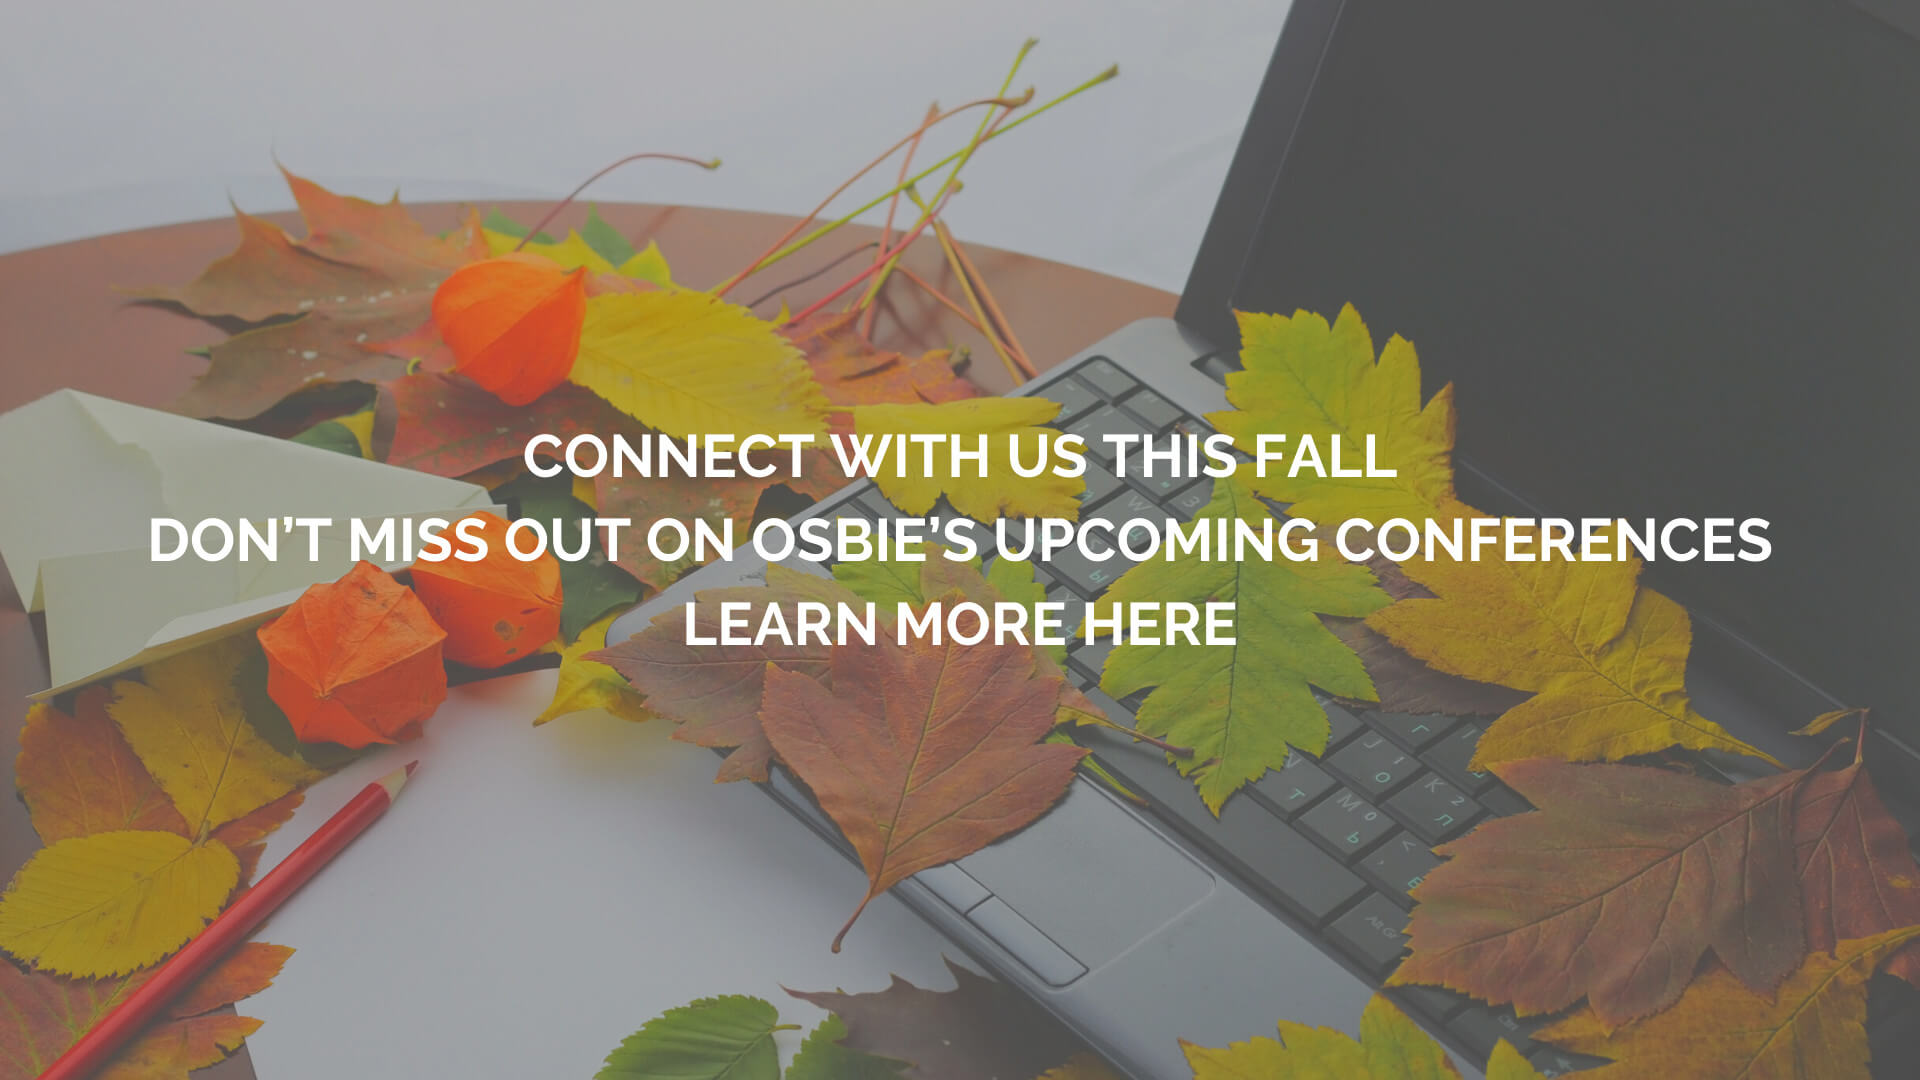 osbie-fall-connect-3